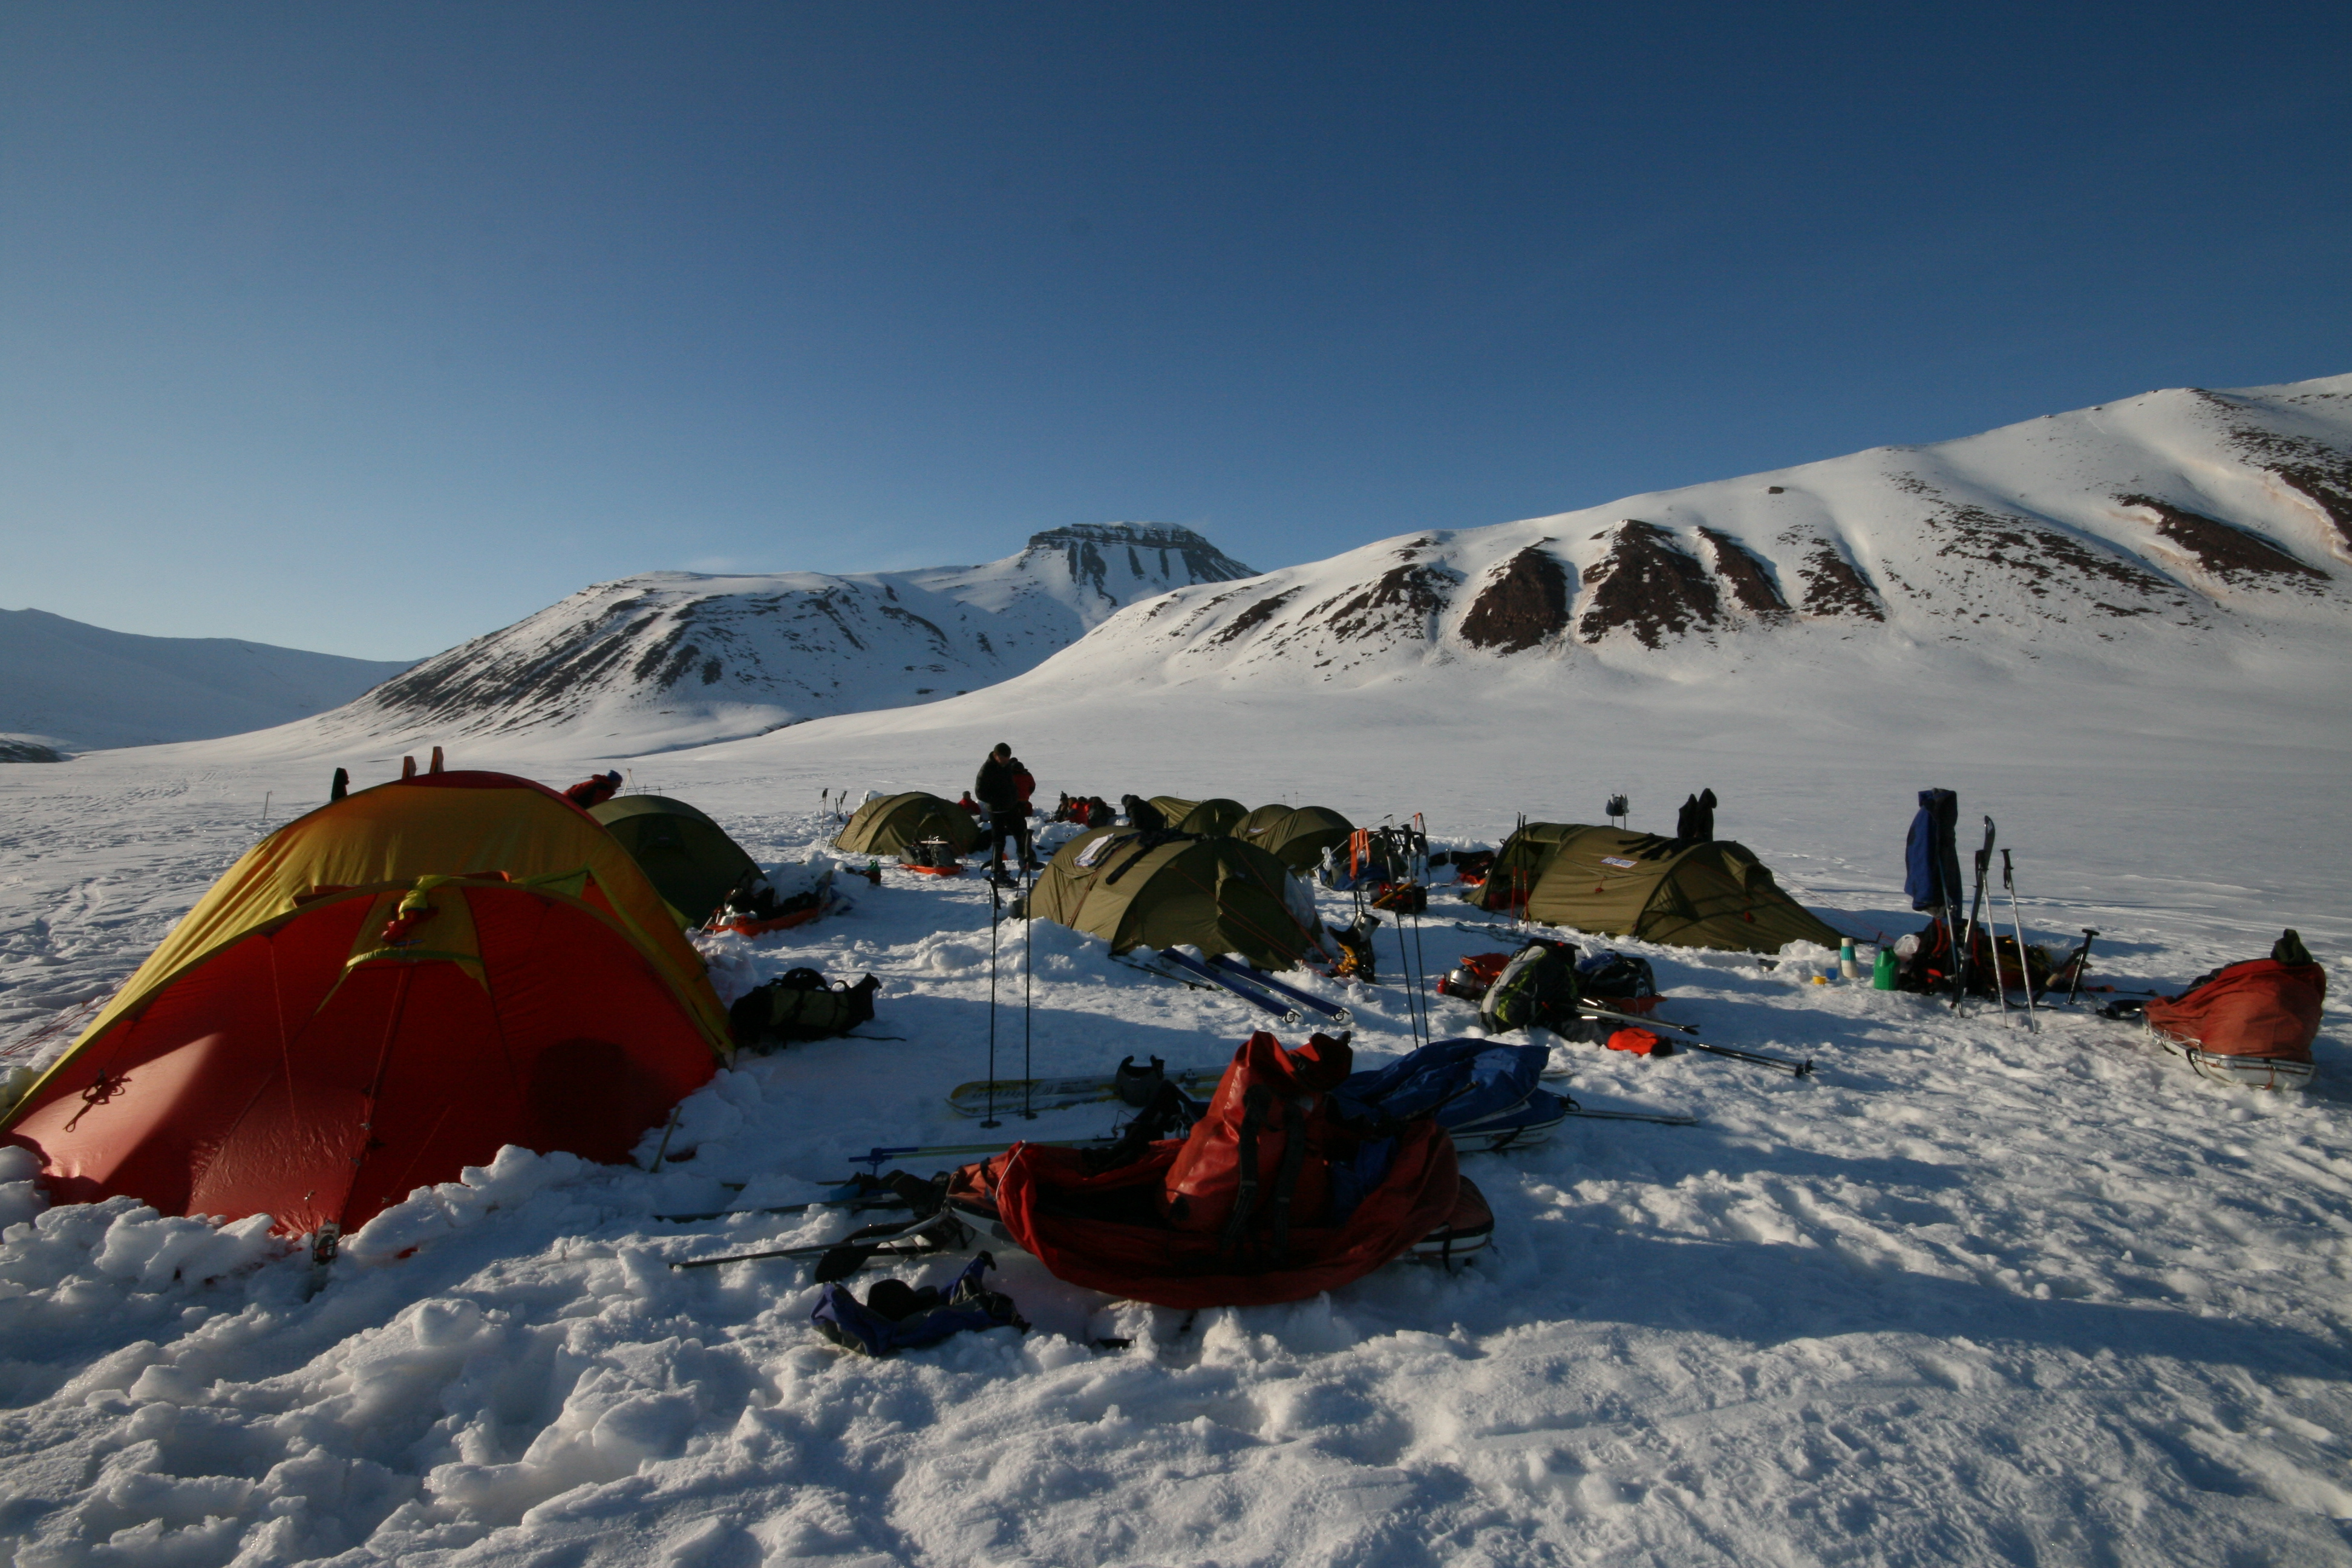 Summer ski expedition: Experience Svalbard with skis and